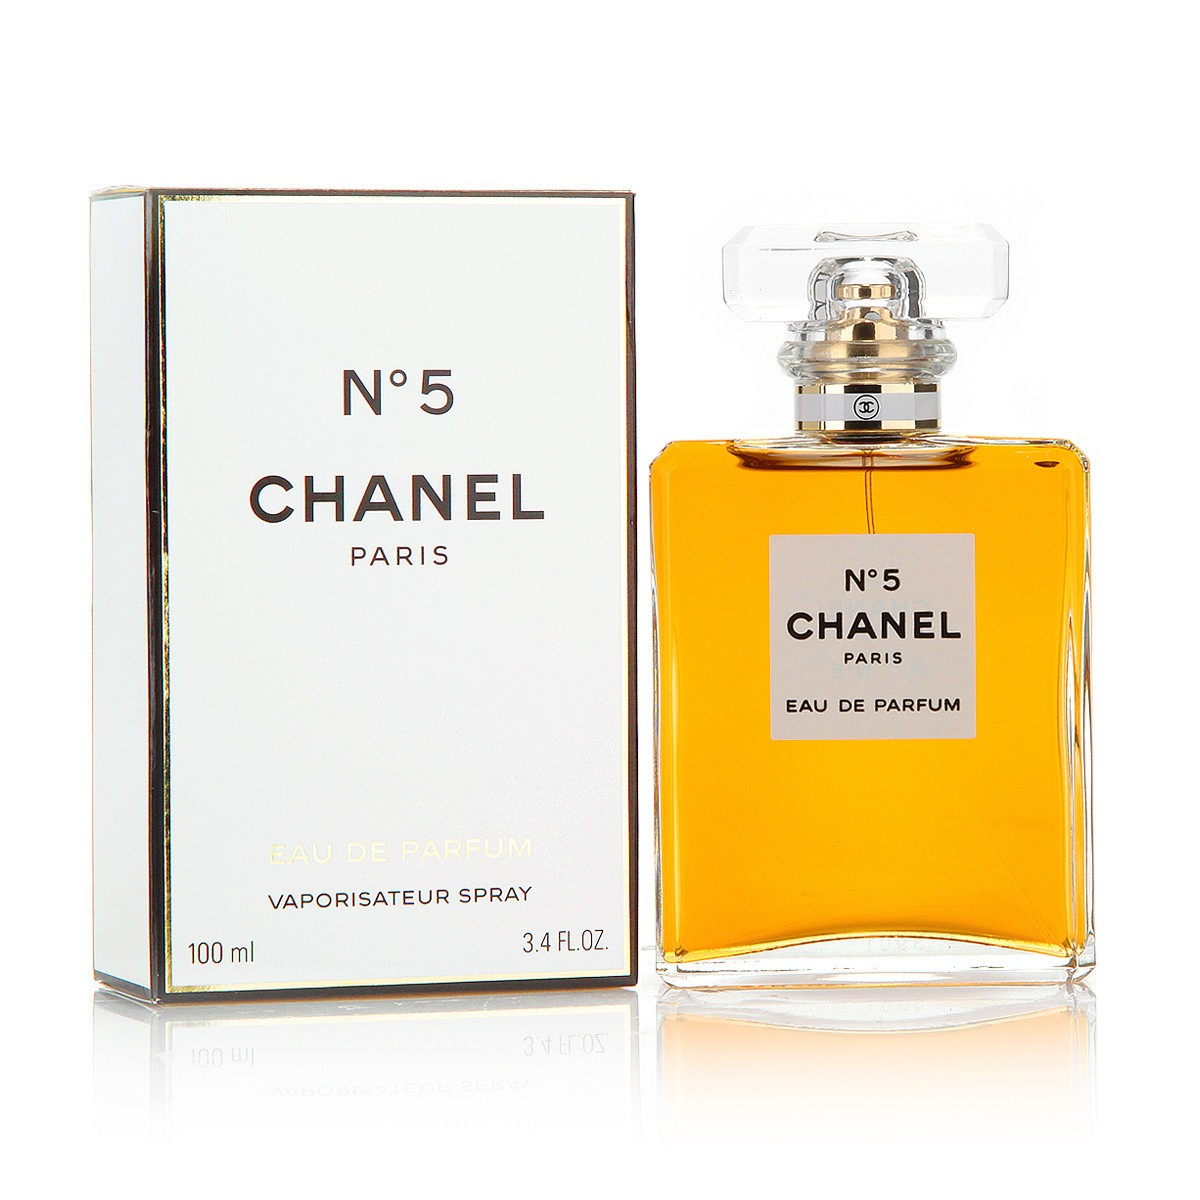 chanel no 5 perfume 100ml edp for women 13500 tk. Black Bedroom Furniture Sets. Home Design Ideas